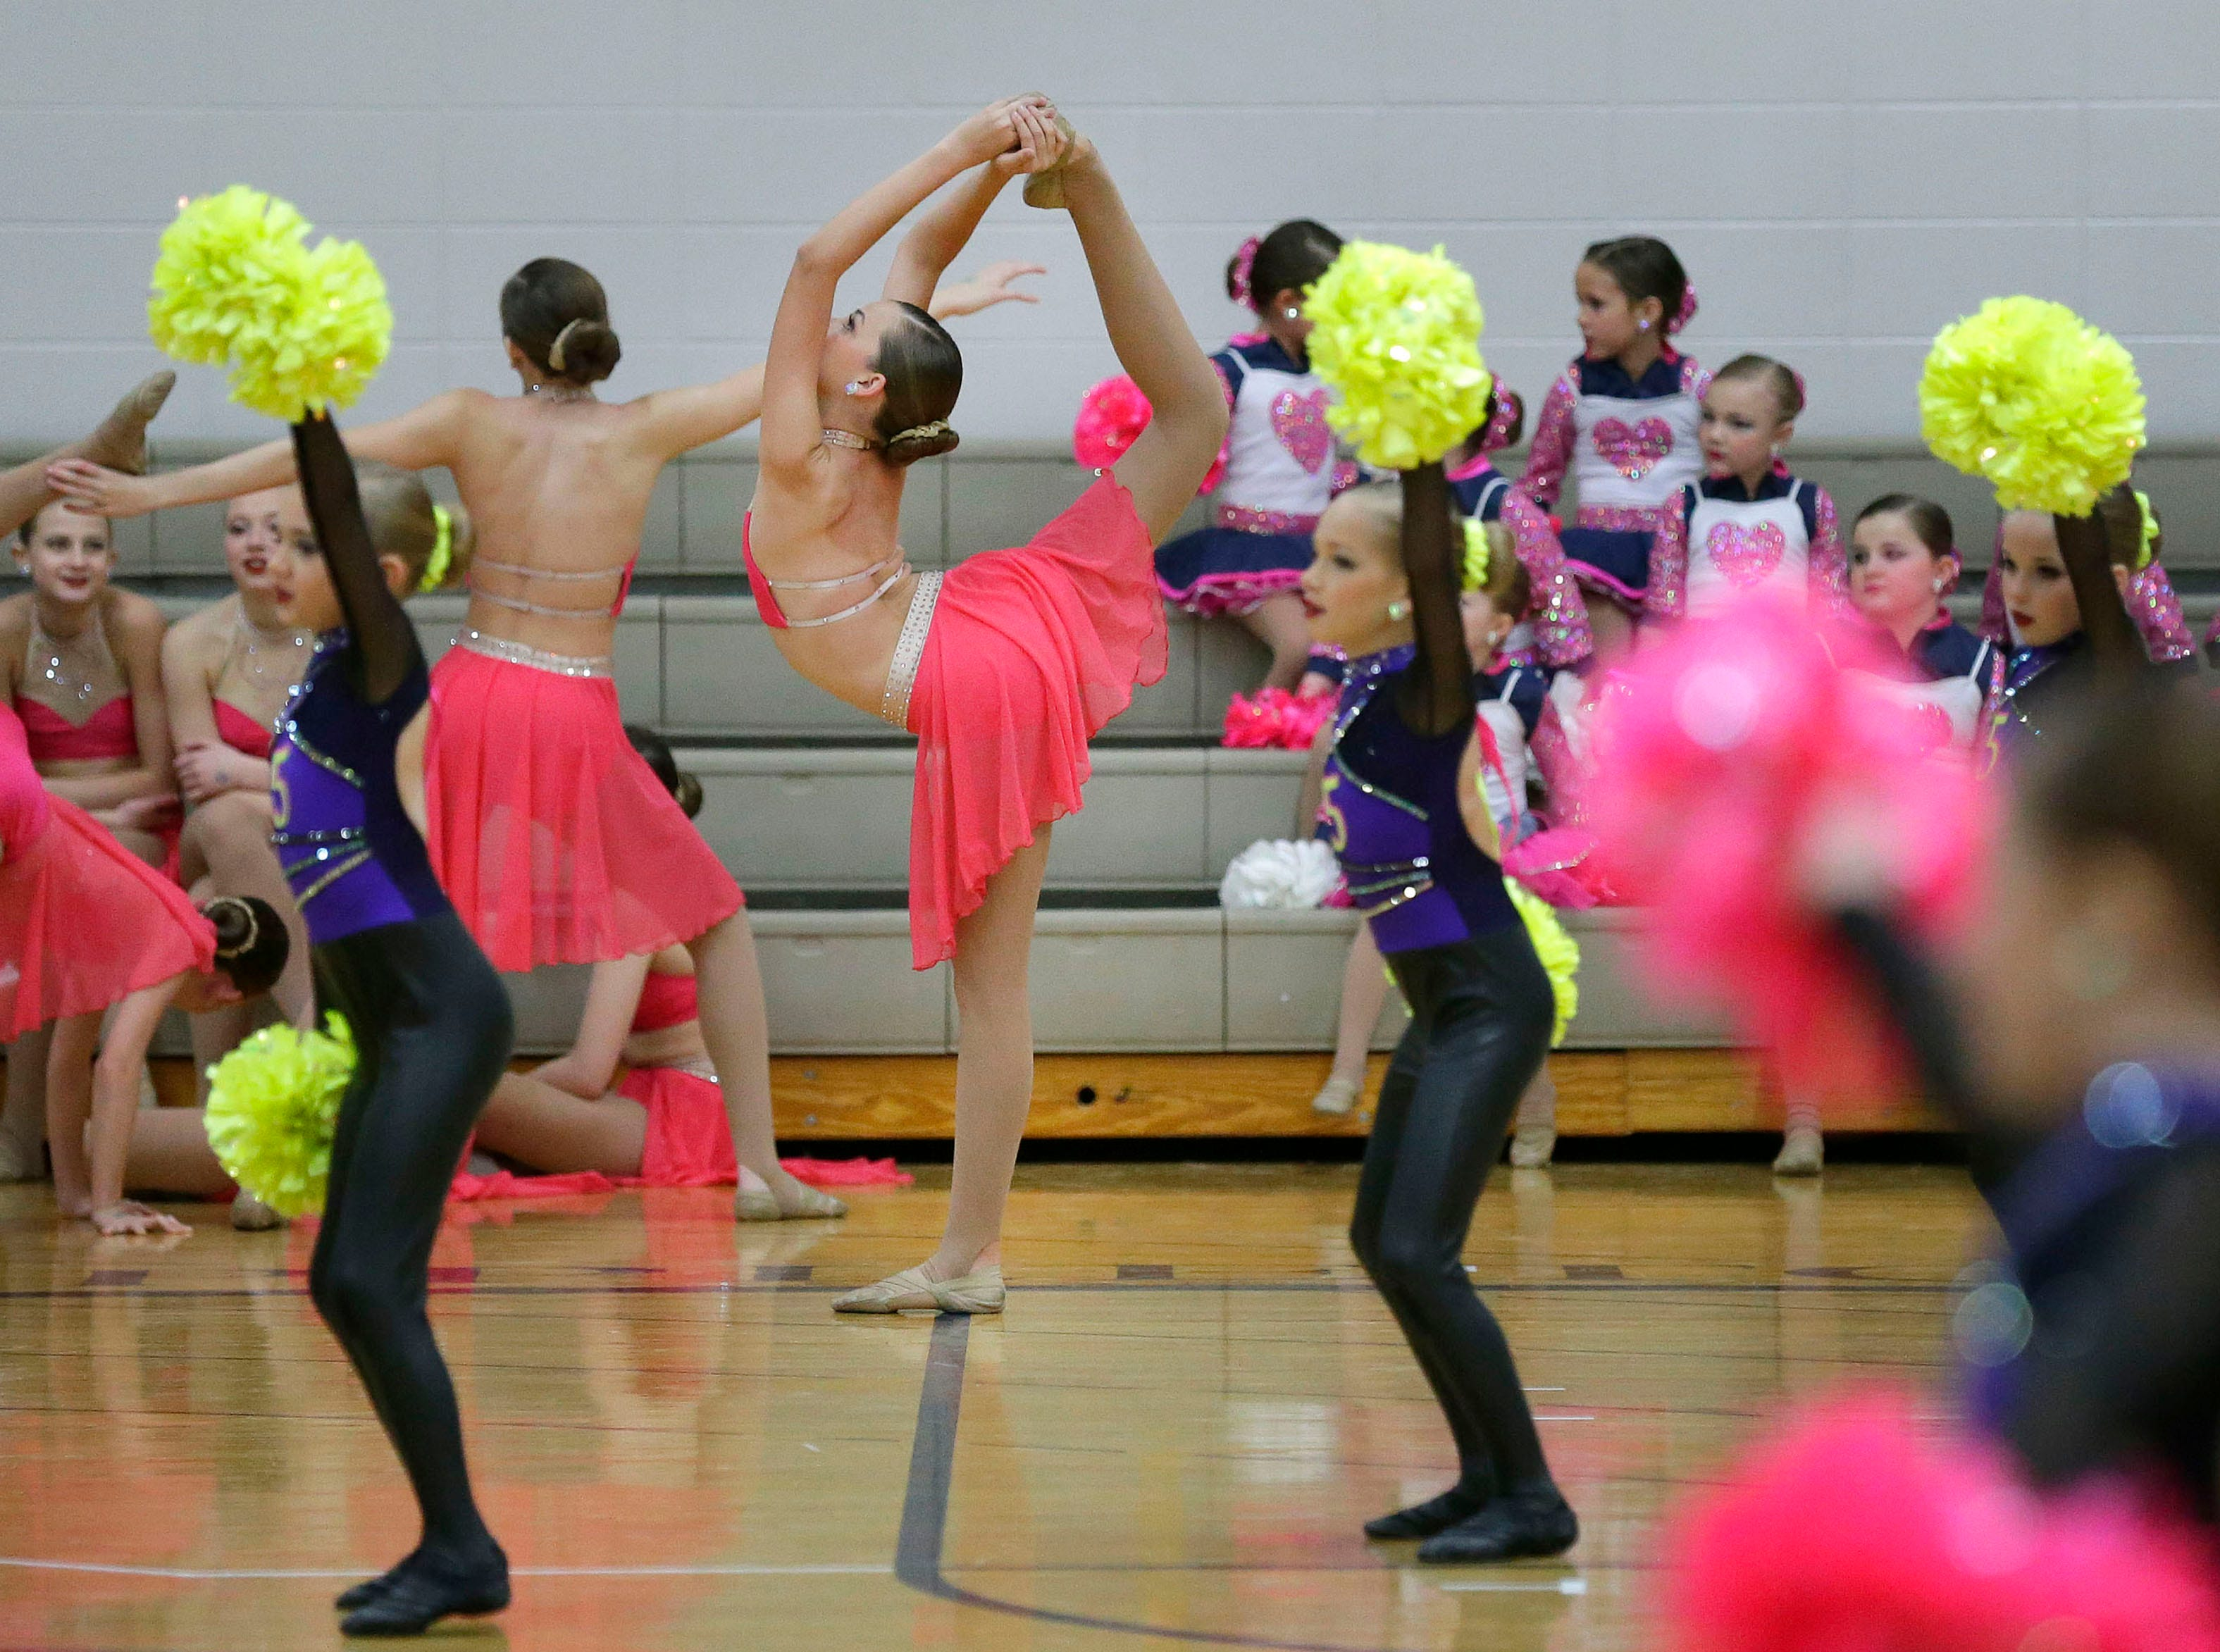 Chloe Dulski with the Energizers Dance Team gets ready while the Energizers Mini Pom Team practices their routine in the foreground as the Lightning Bolt Explosion Cheer and Dance competition takes place Saturday, January 5, 2019, at Appleton North High School in Appleton, Wis.